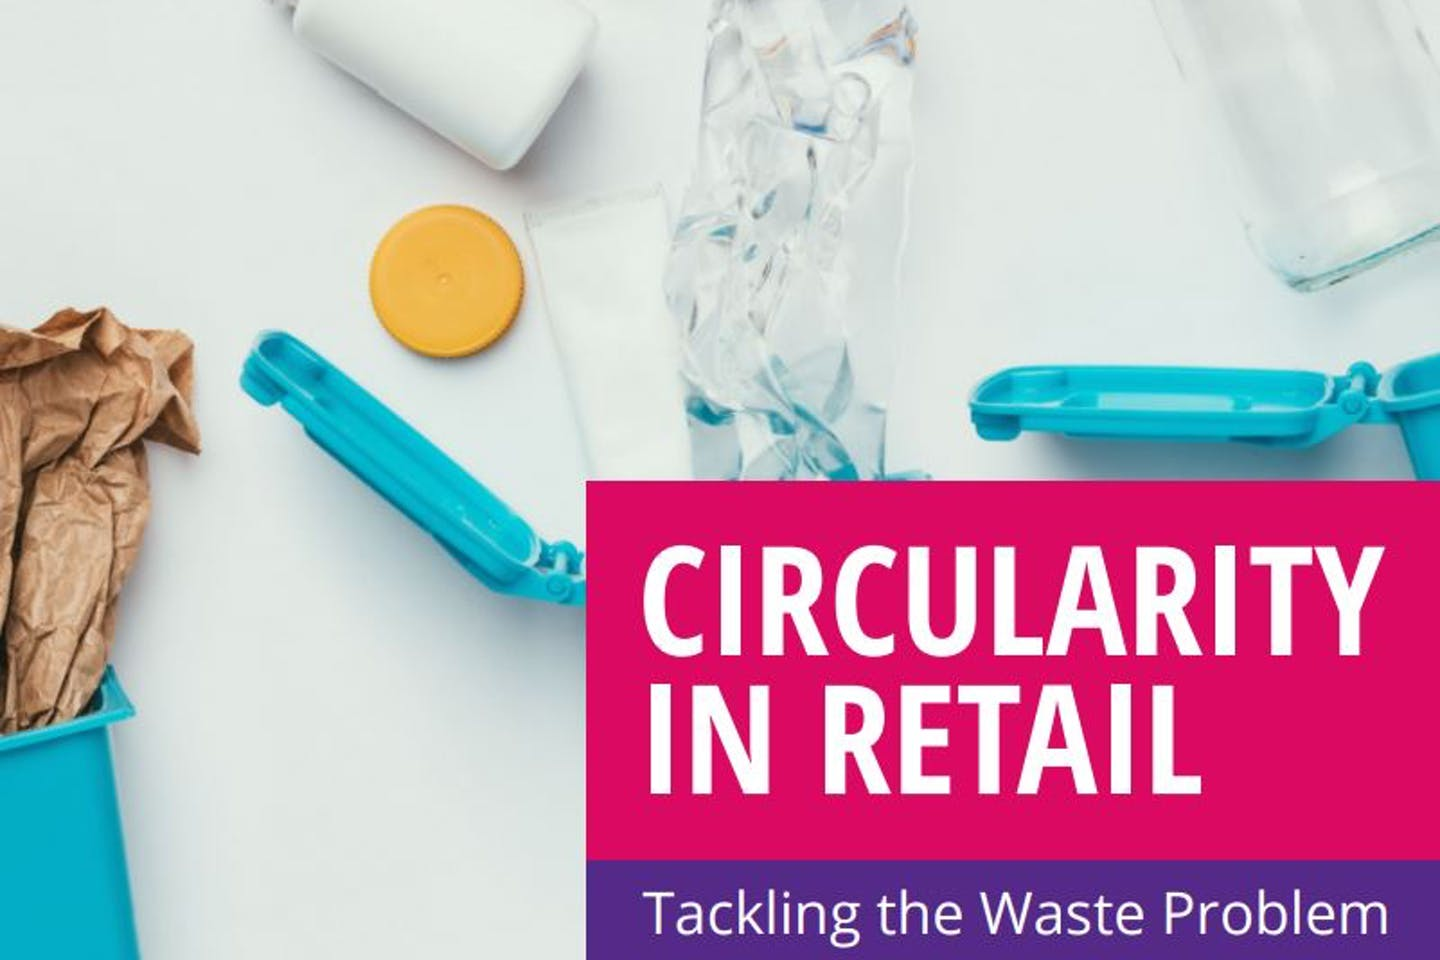 Lendlease and WWF-Singapore report on heralding new waste management best practices at retail properties